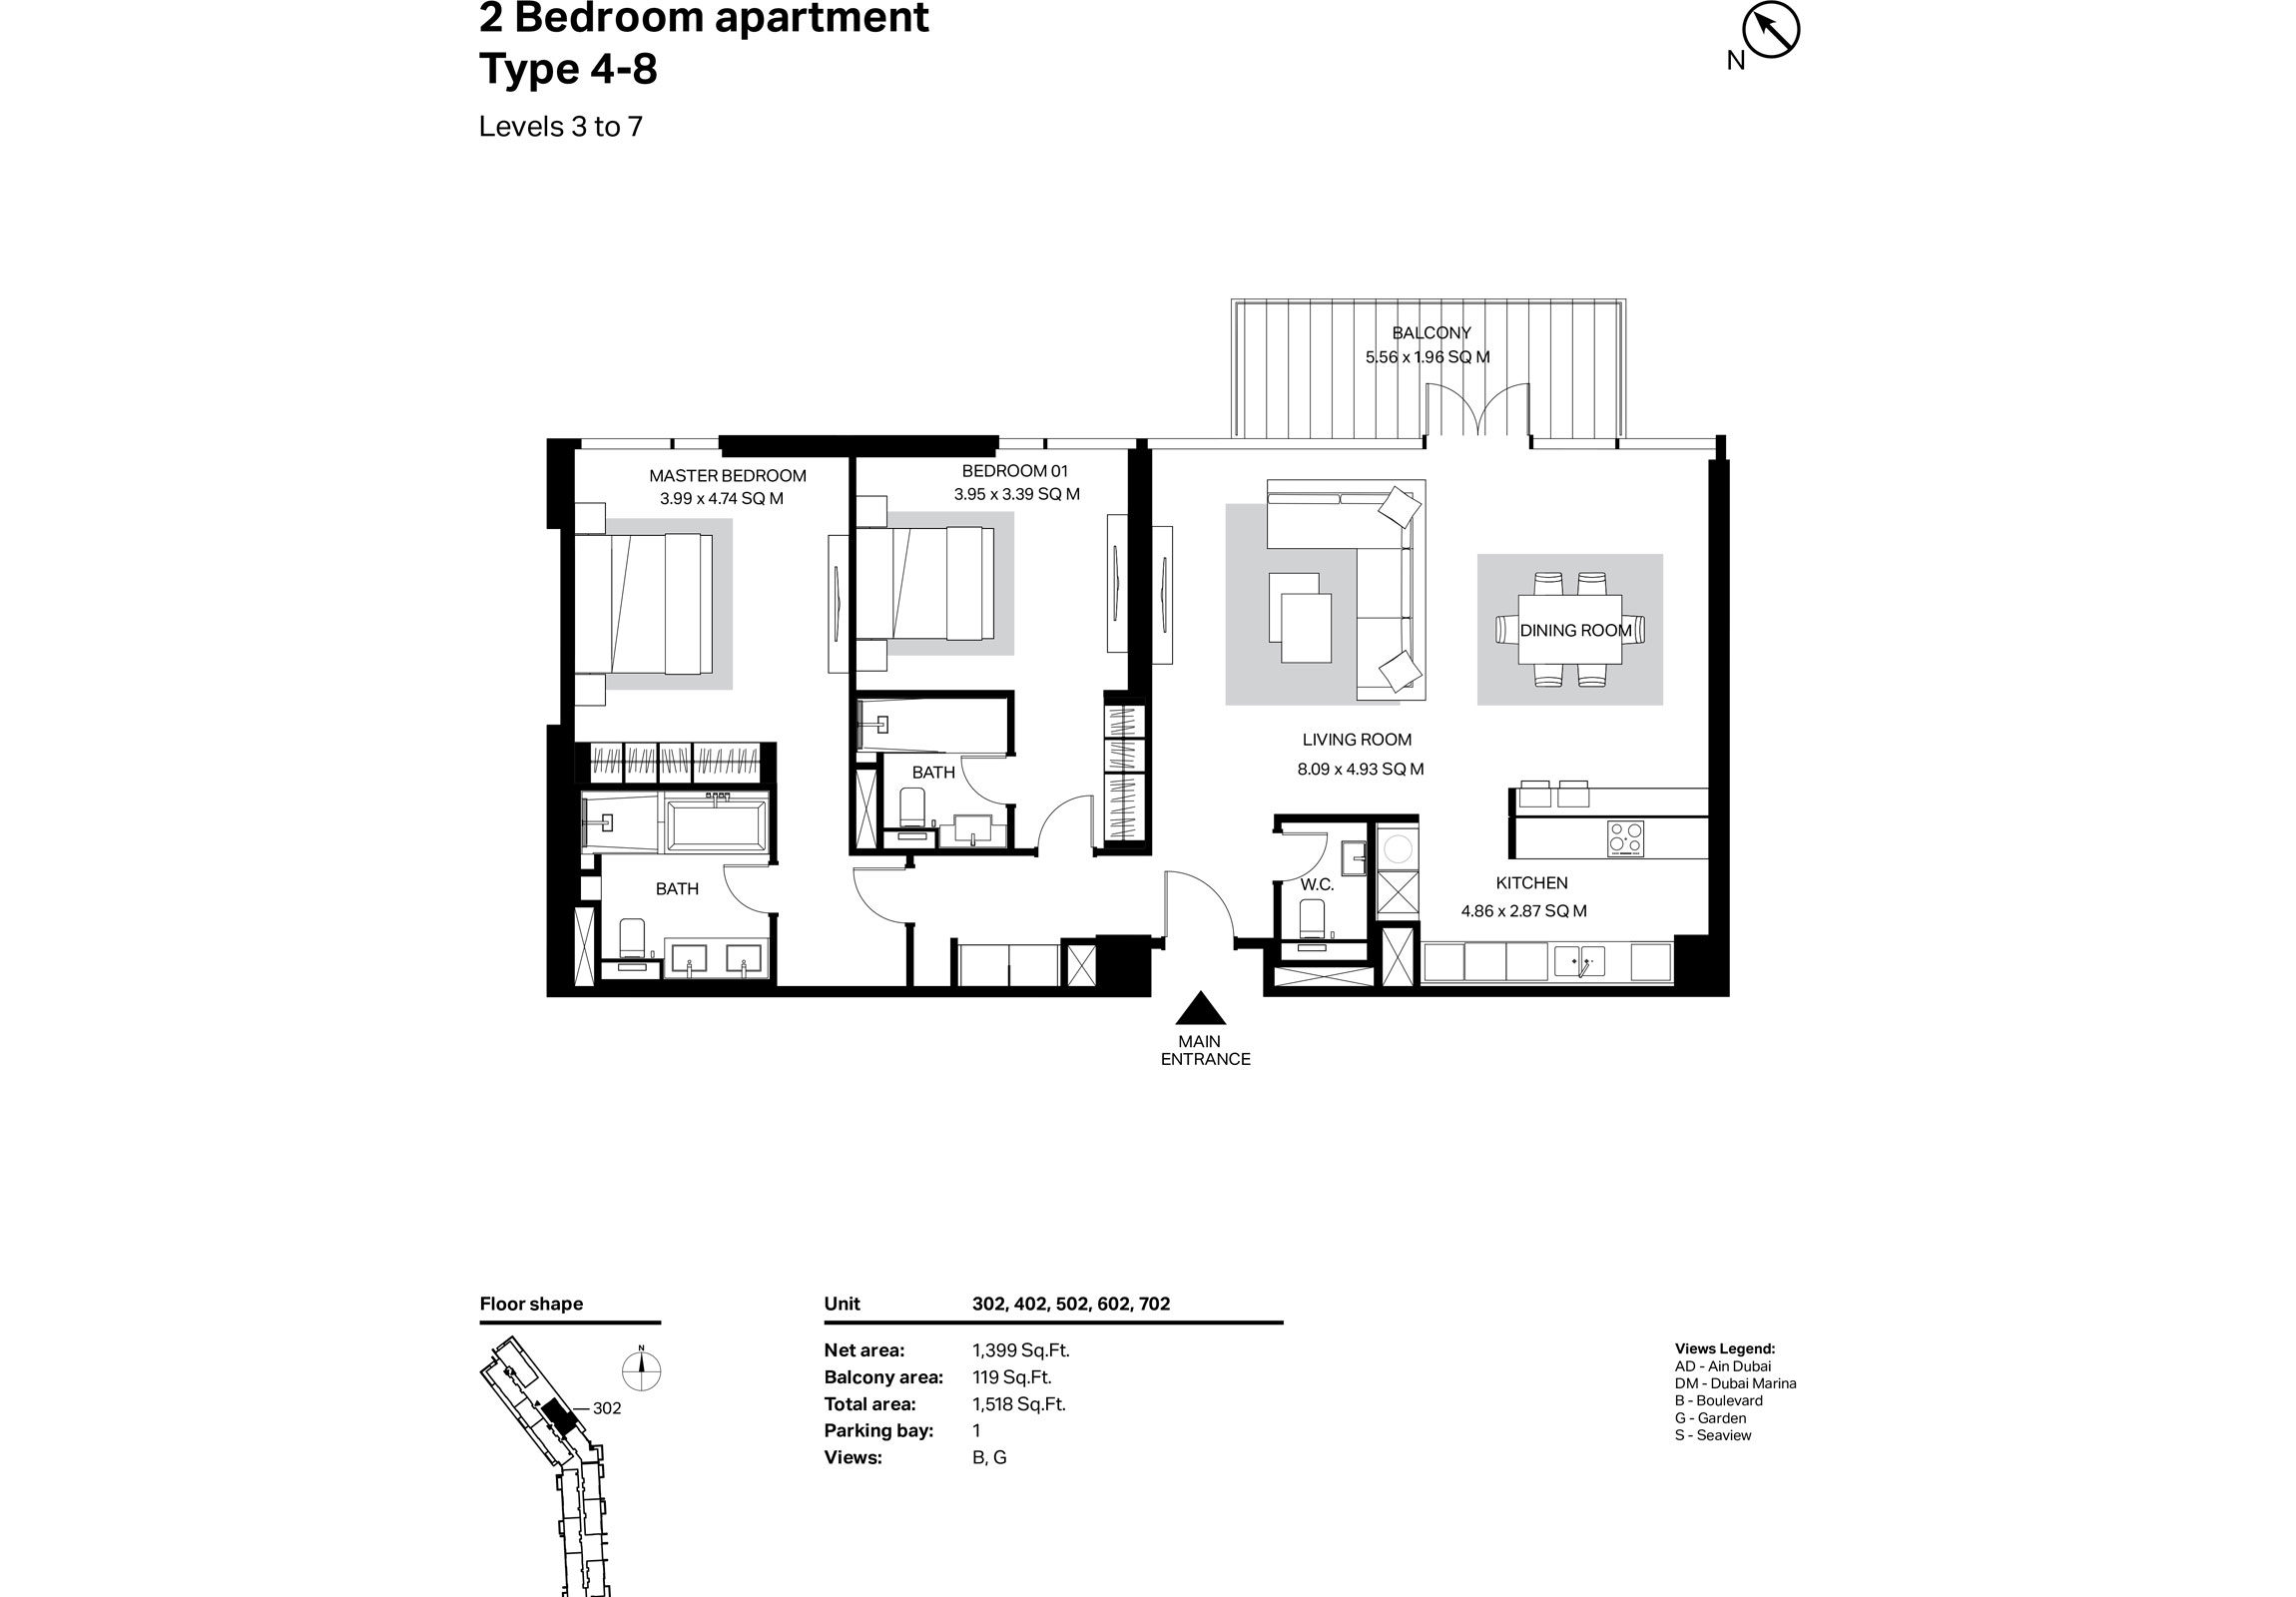 Building 2 - 2 Bedroom Type 4-8 Level 3 To 7 Size 1518    sq. ft.